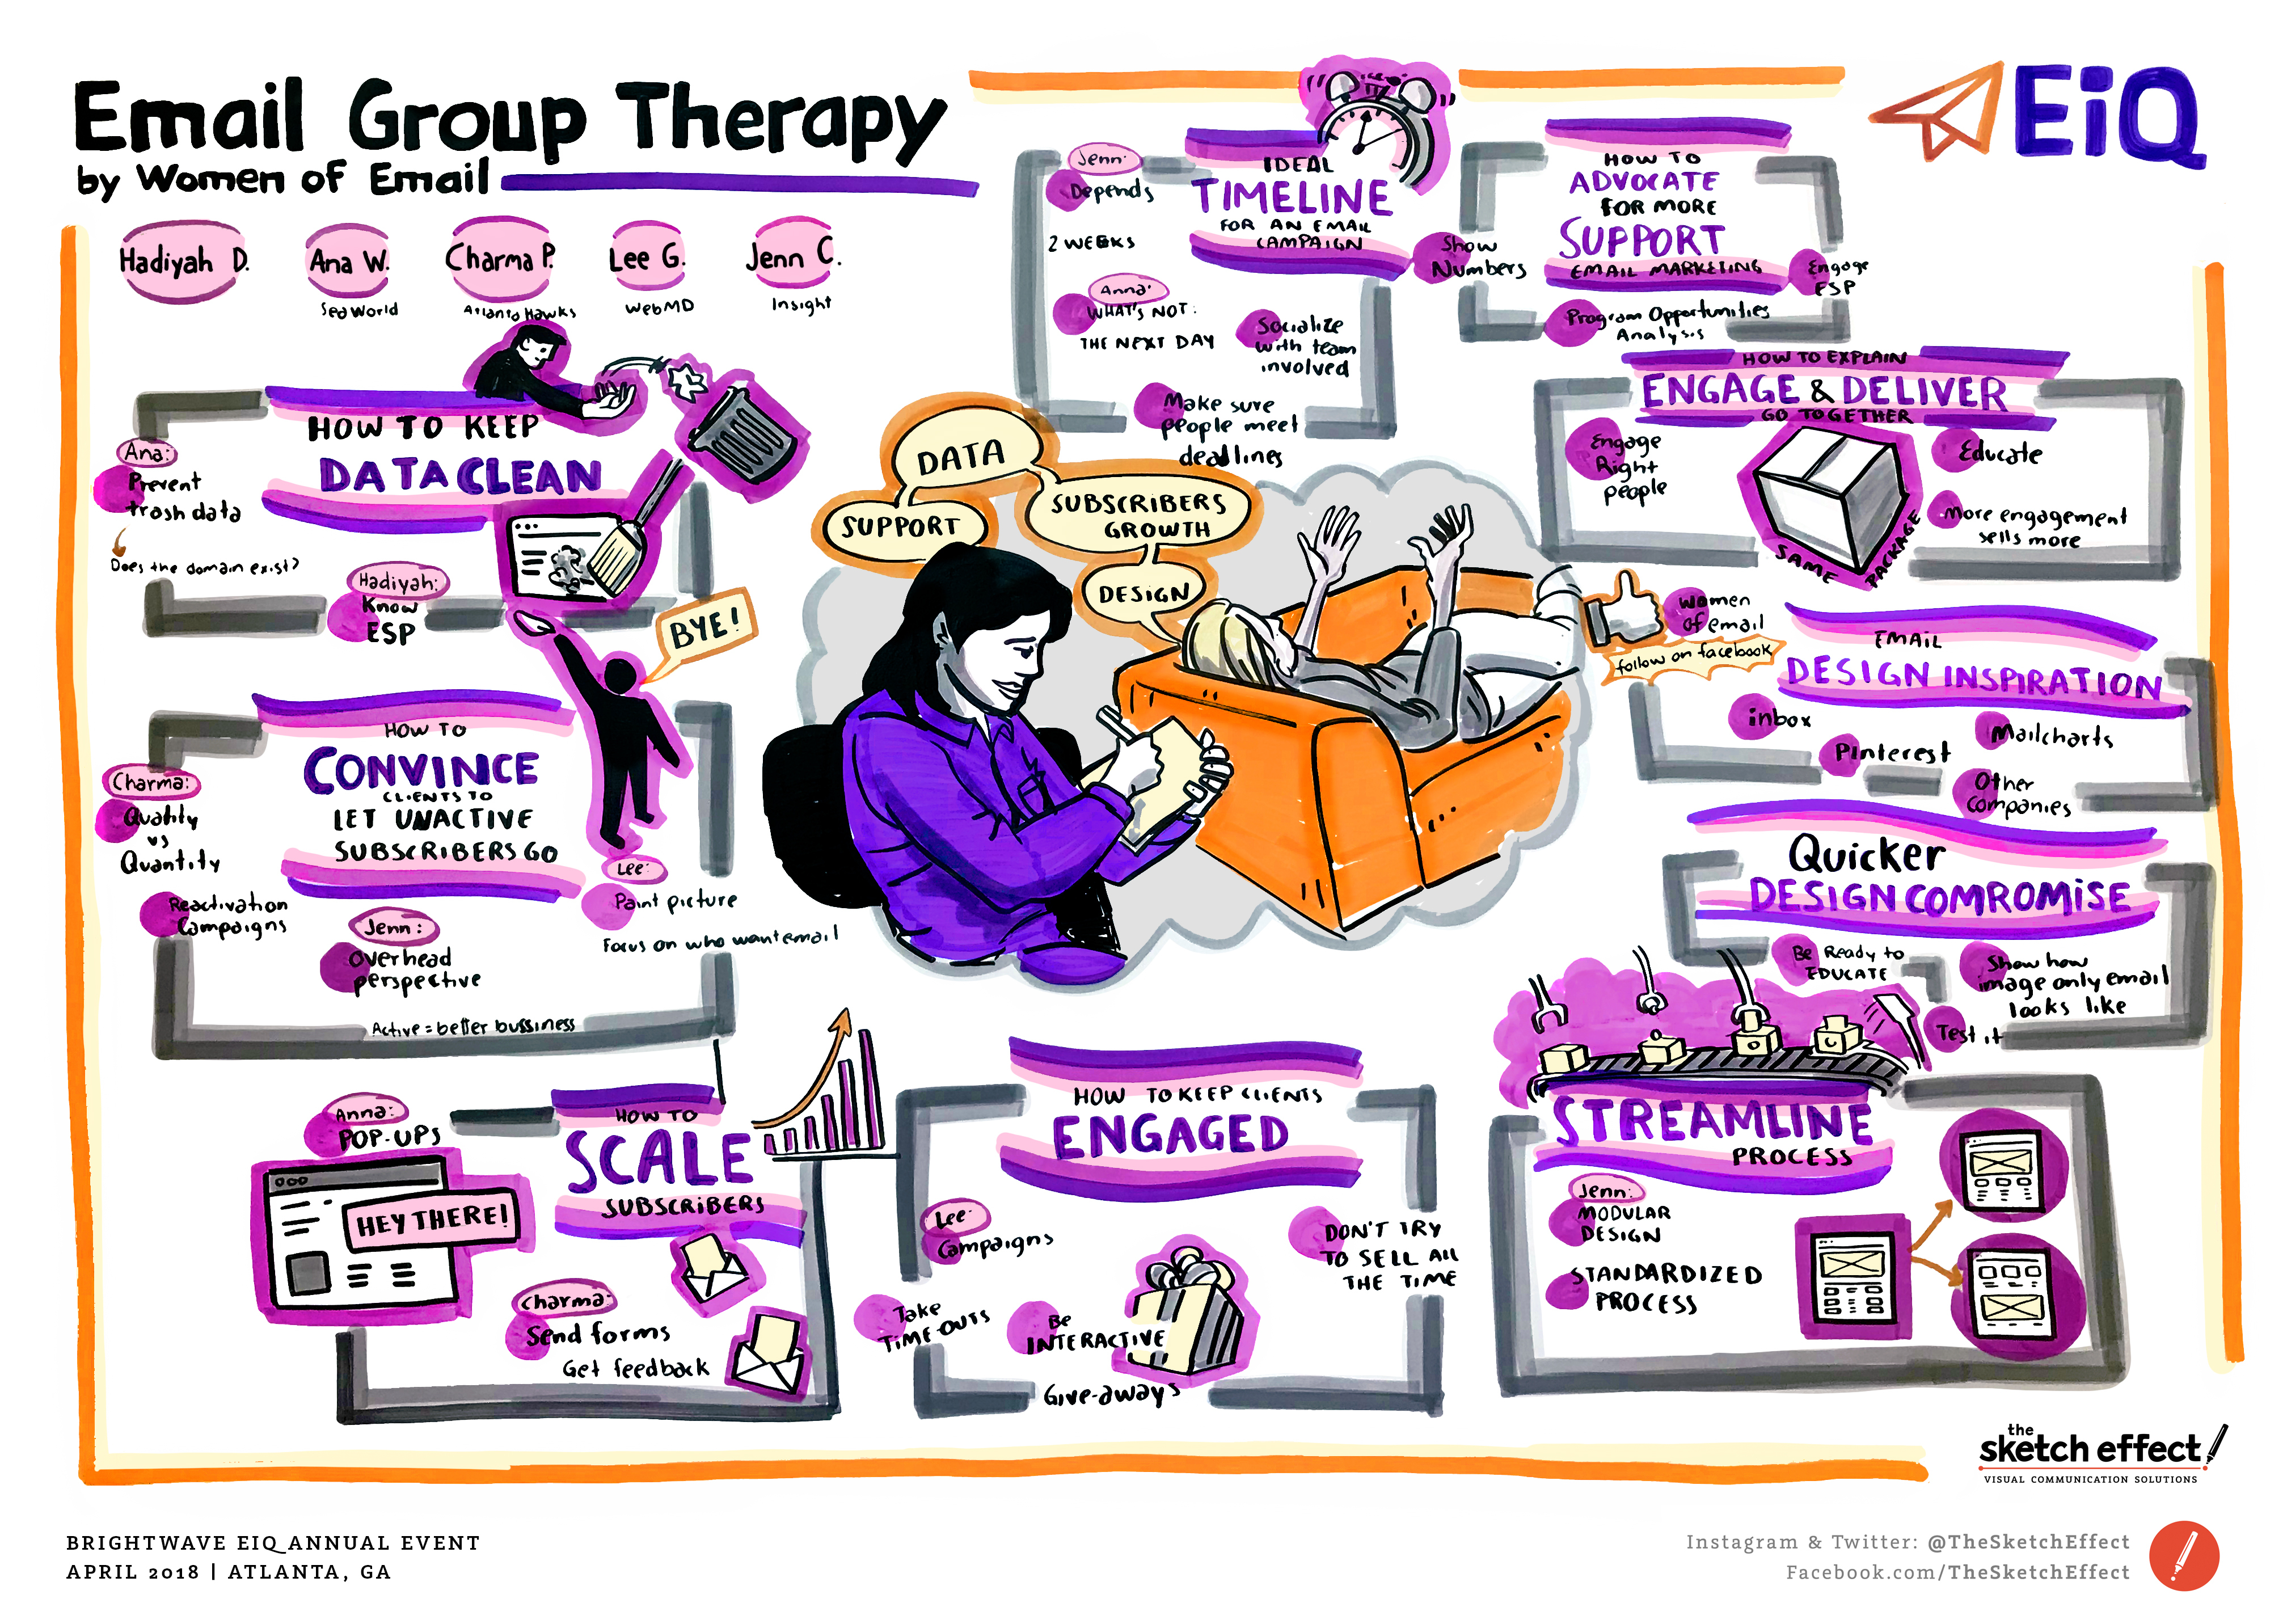 Email Group Therapy